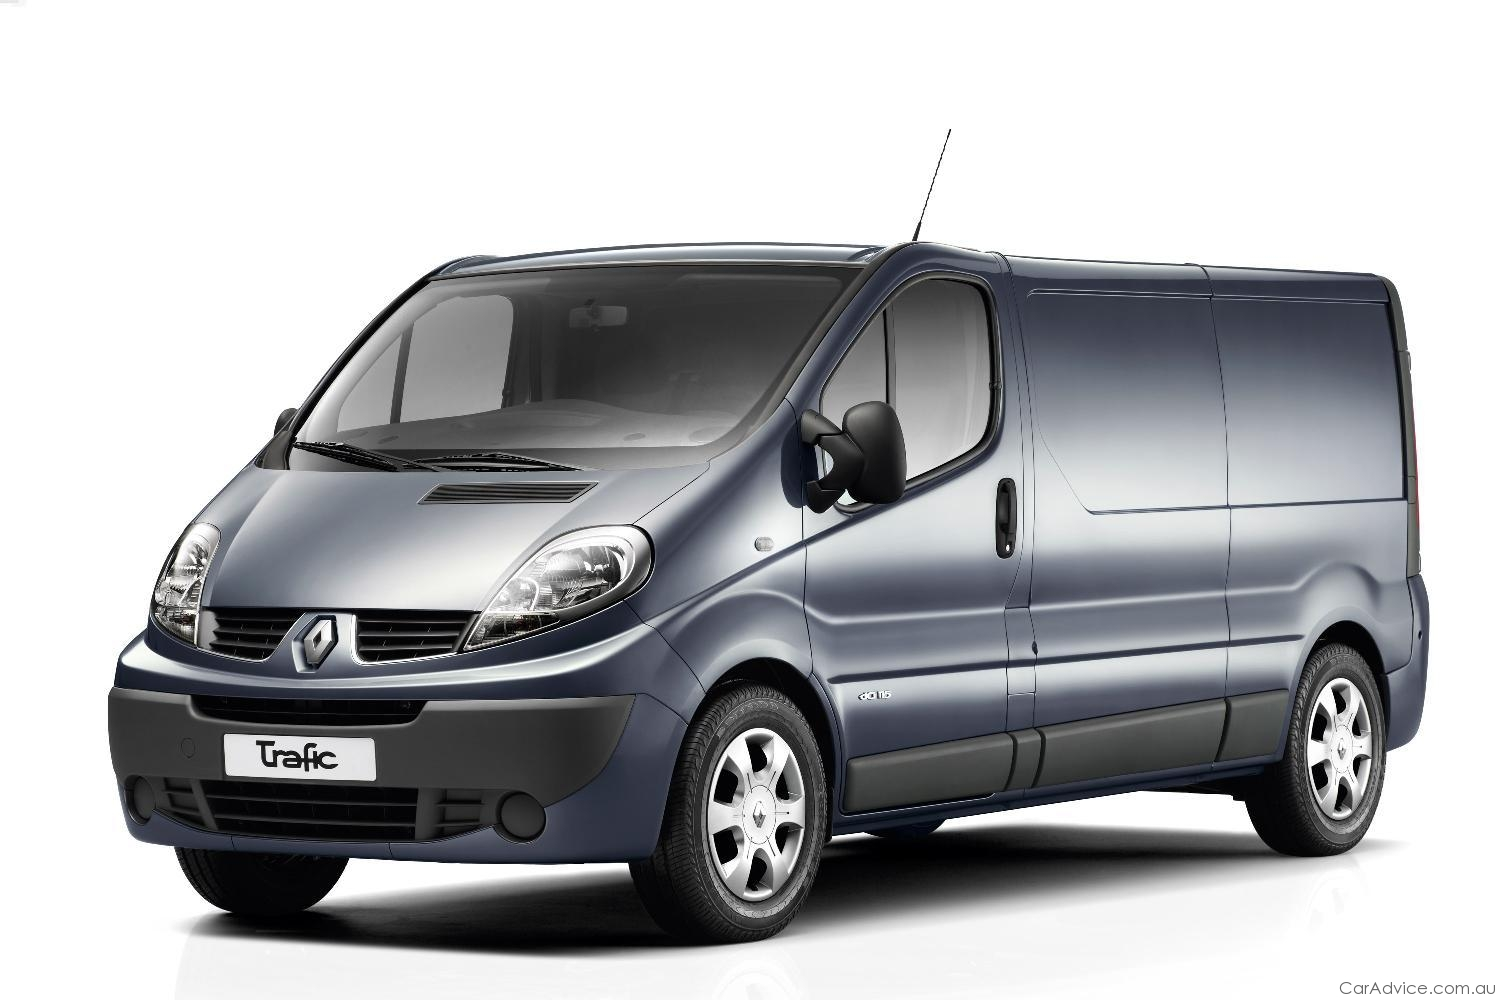 renault master renault trafic and renault kangoo van ranges all updated photos caradvice. Black Bedroom Furniture Sets. Home Design Ideas